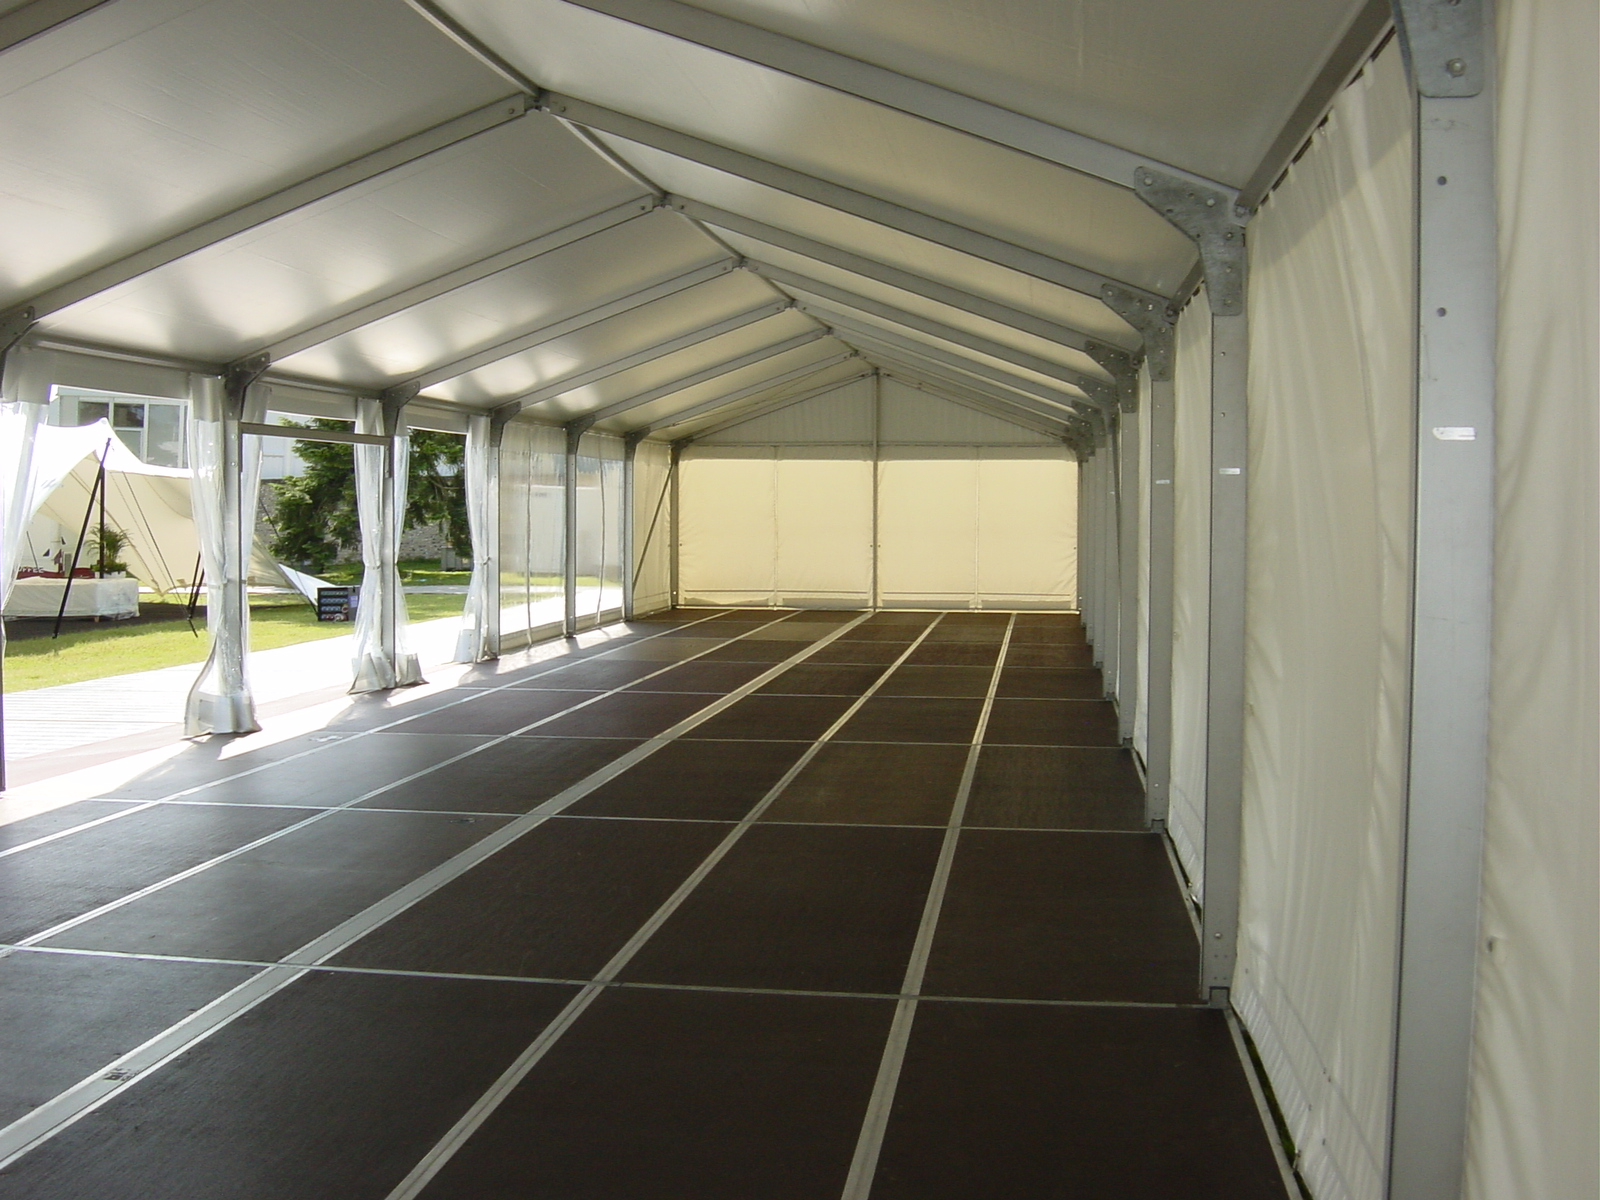 Temporary Structures Hire And Installation Temporary